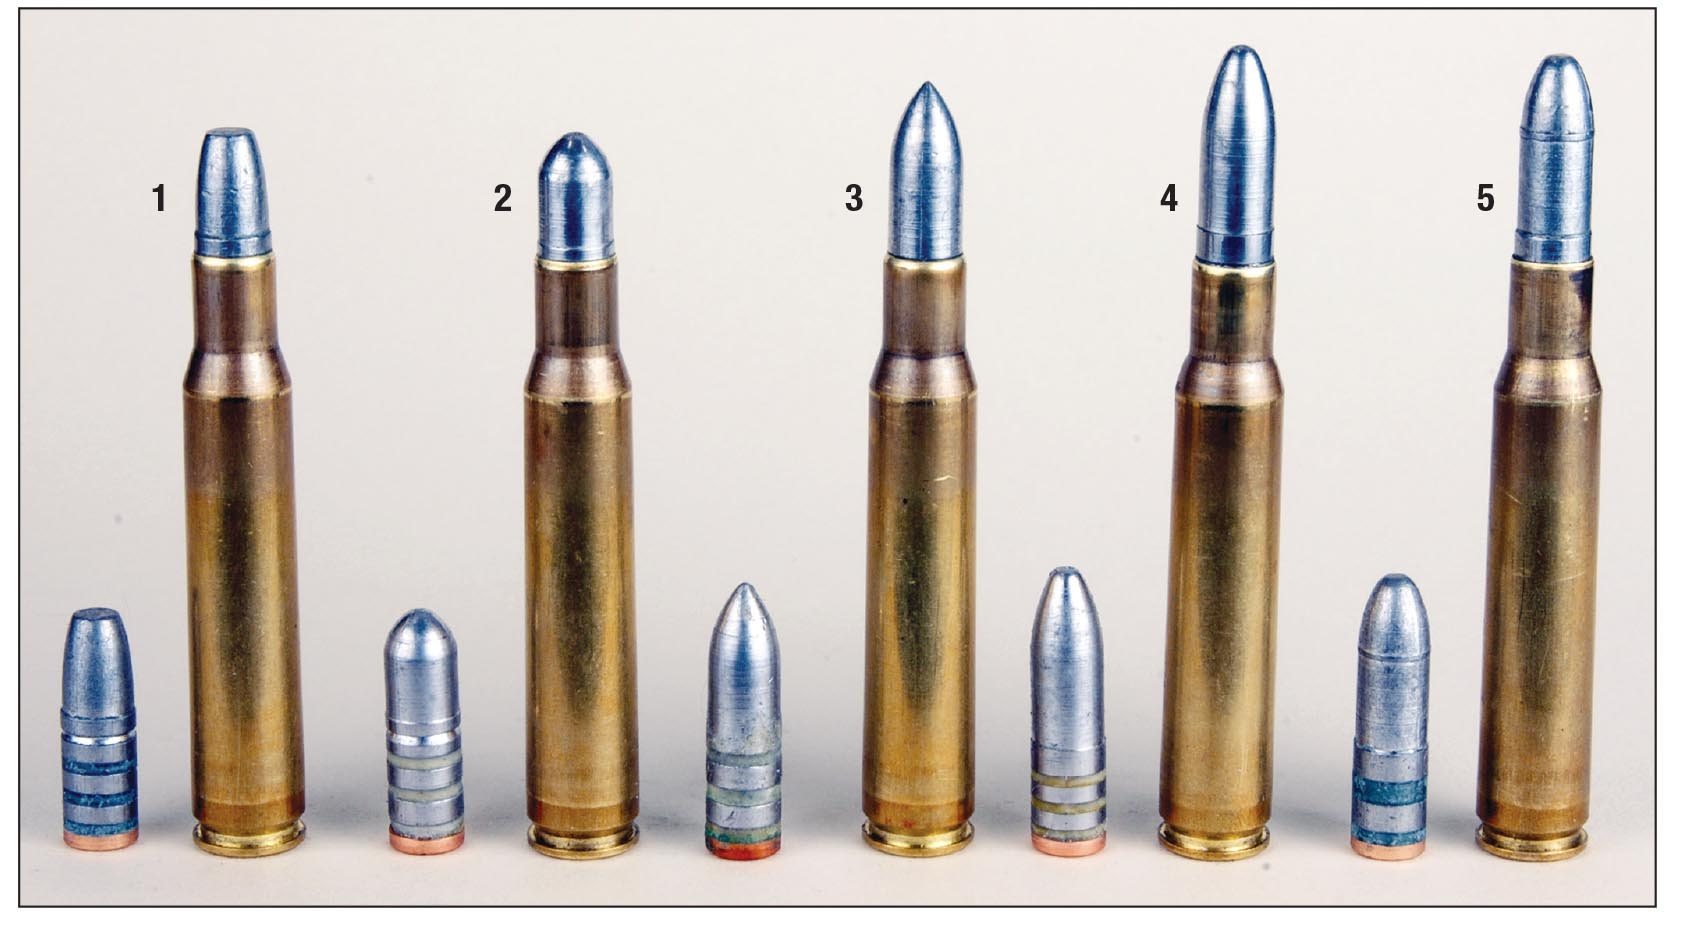 The cast bullets and loaded .30-06 rounds used in most of Mike's experimenting for '03/'03A3 rifles include (1) Laser Cast 170-grain FN, (2) 170 Lyman 311291 RN, (3) 178 Lyman 311332 SPT, (4) 195 Lyman 311299 RN and a (5) Laser Cast 200-grain RN.